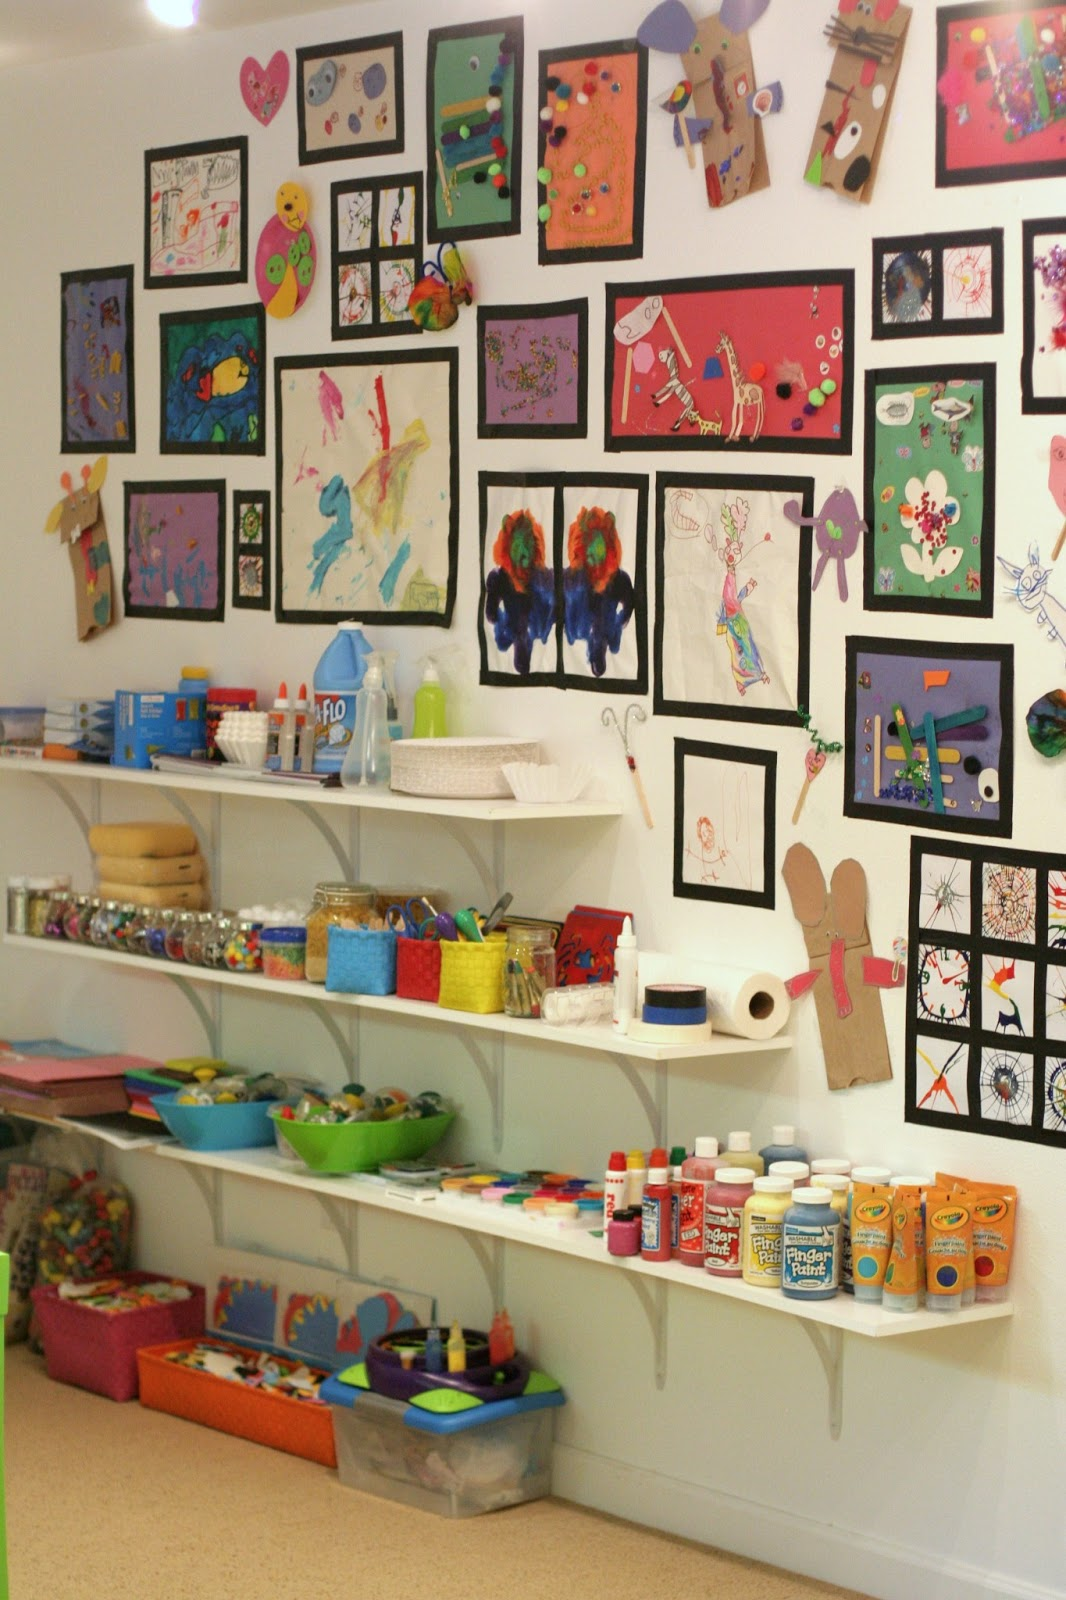 Best Playroom Design Our Art Room This Month